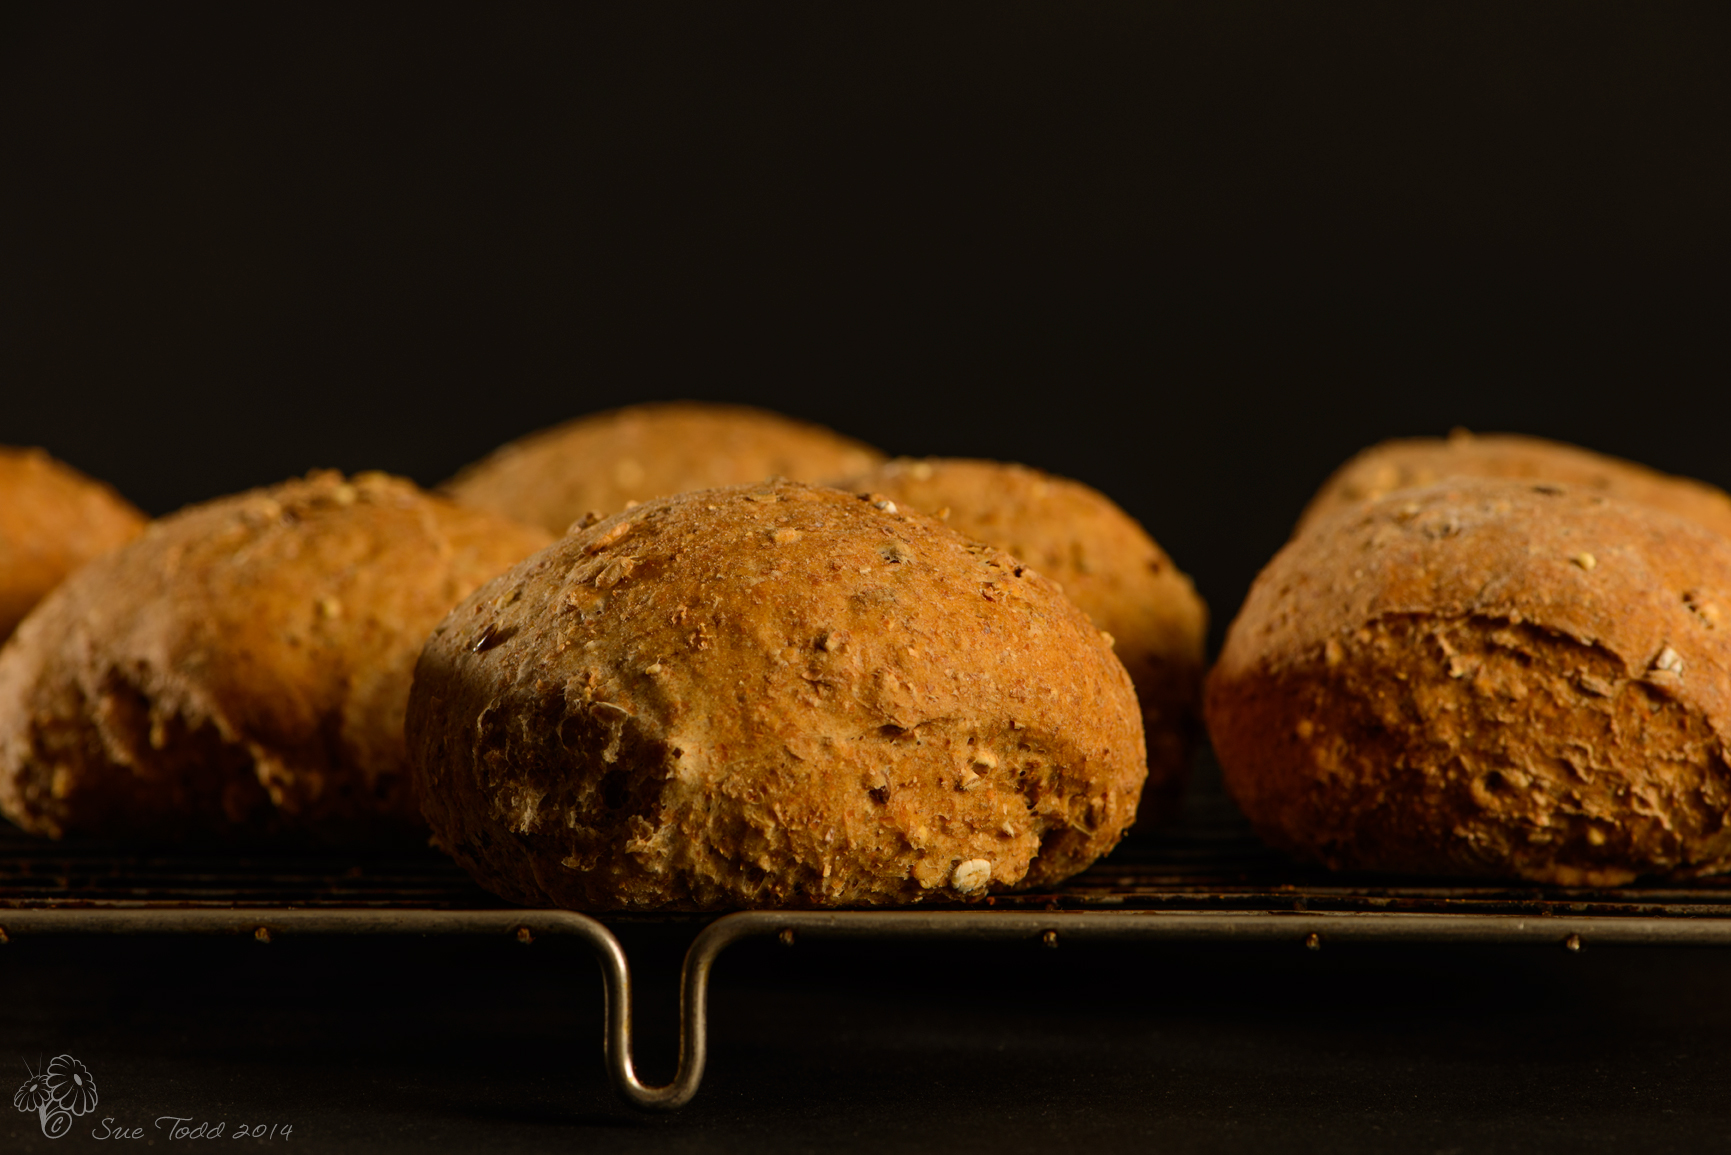 Every Day Bread Wholemeal Buns C Sue Todd 2014